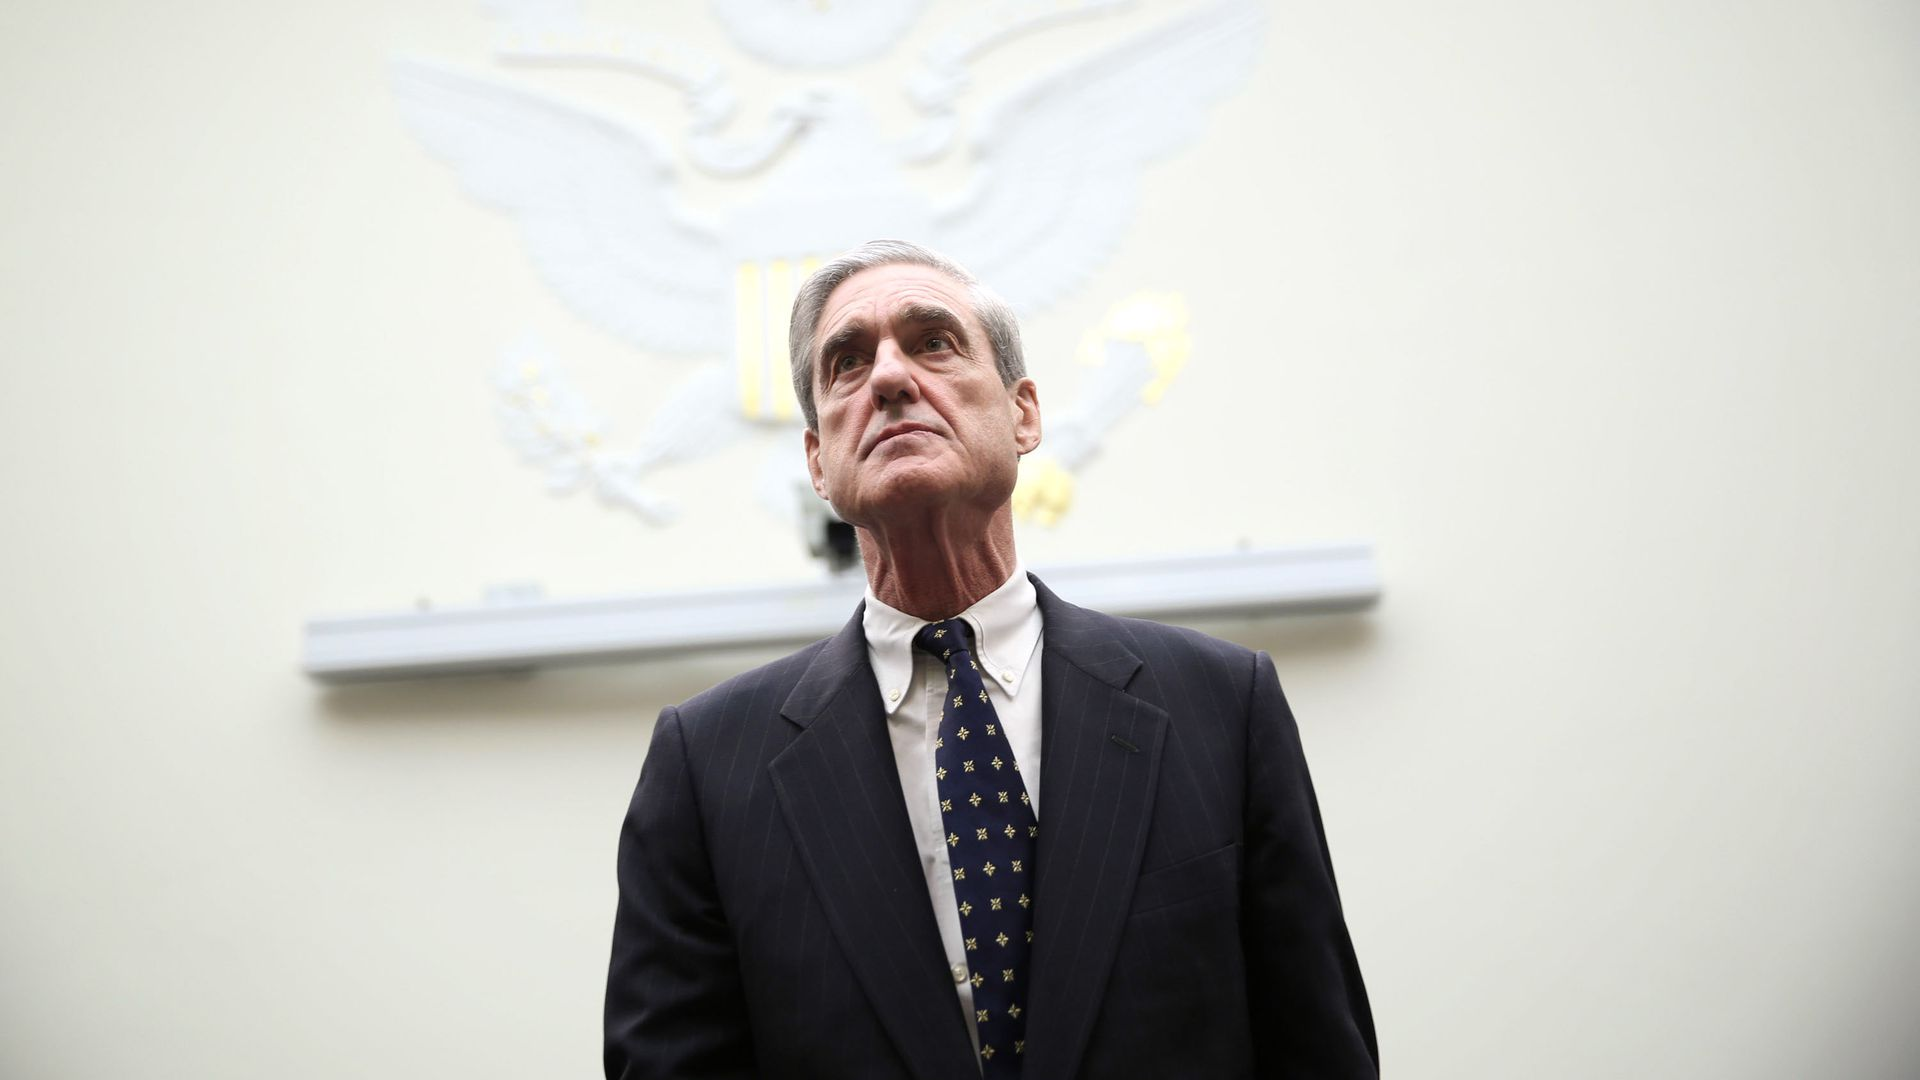 In this image, special counsel Robert Mueller stands in front of a white background.